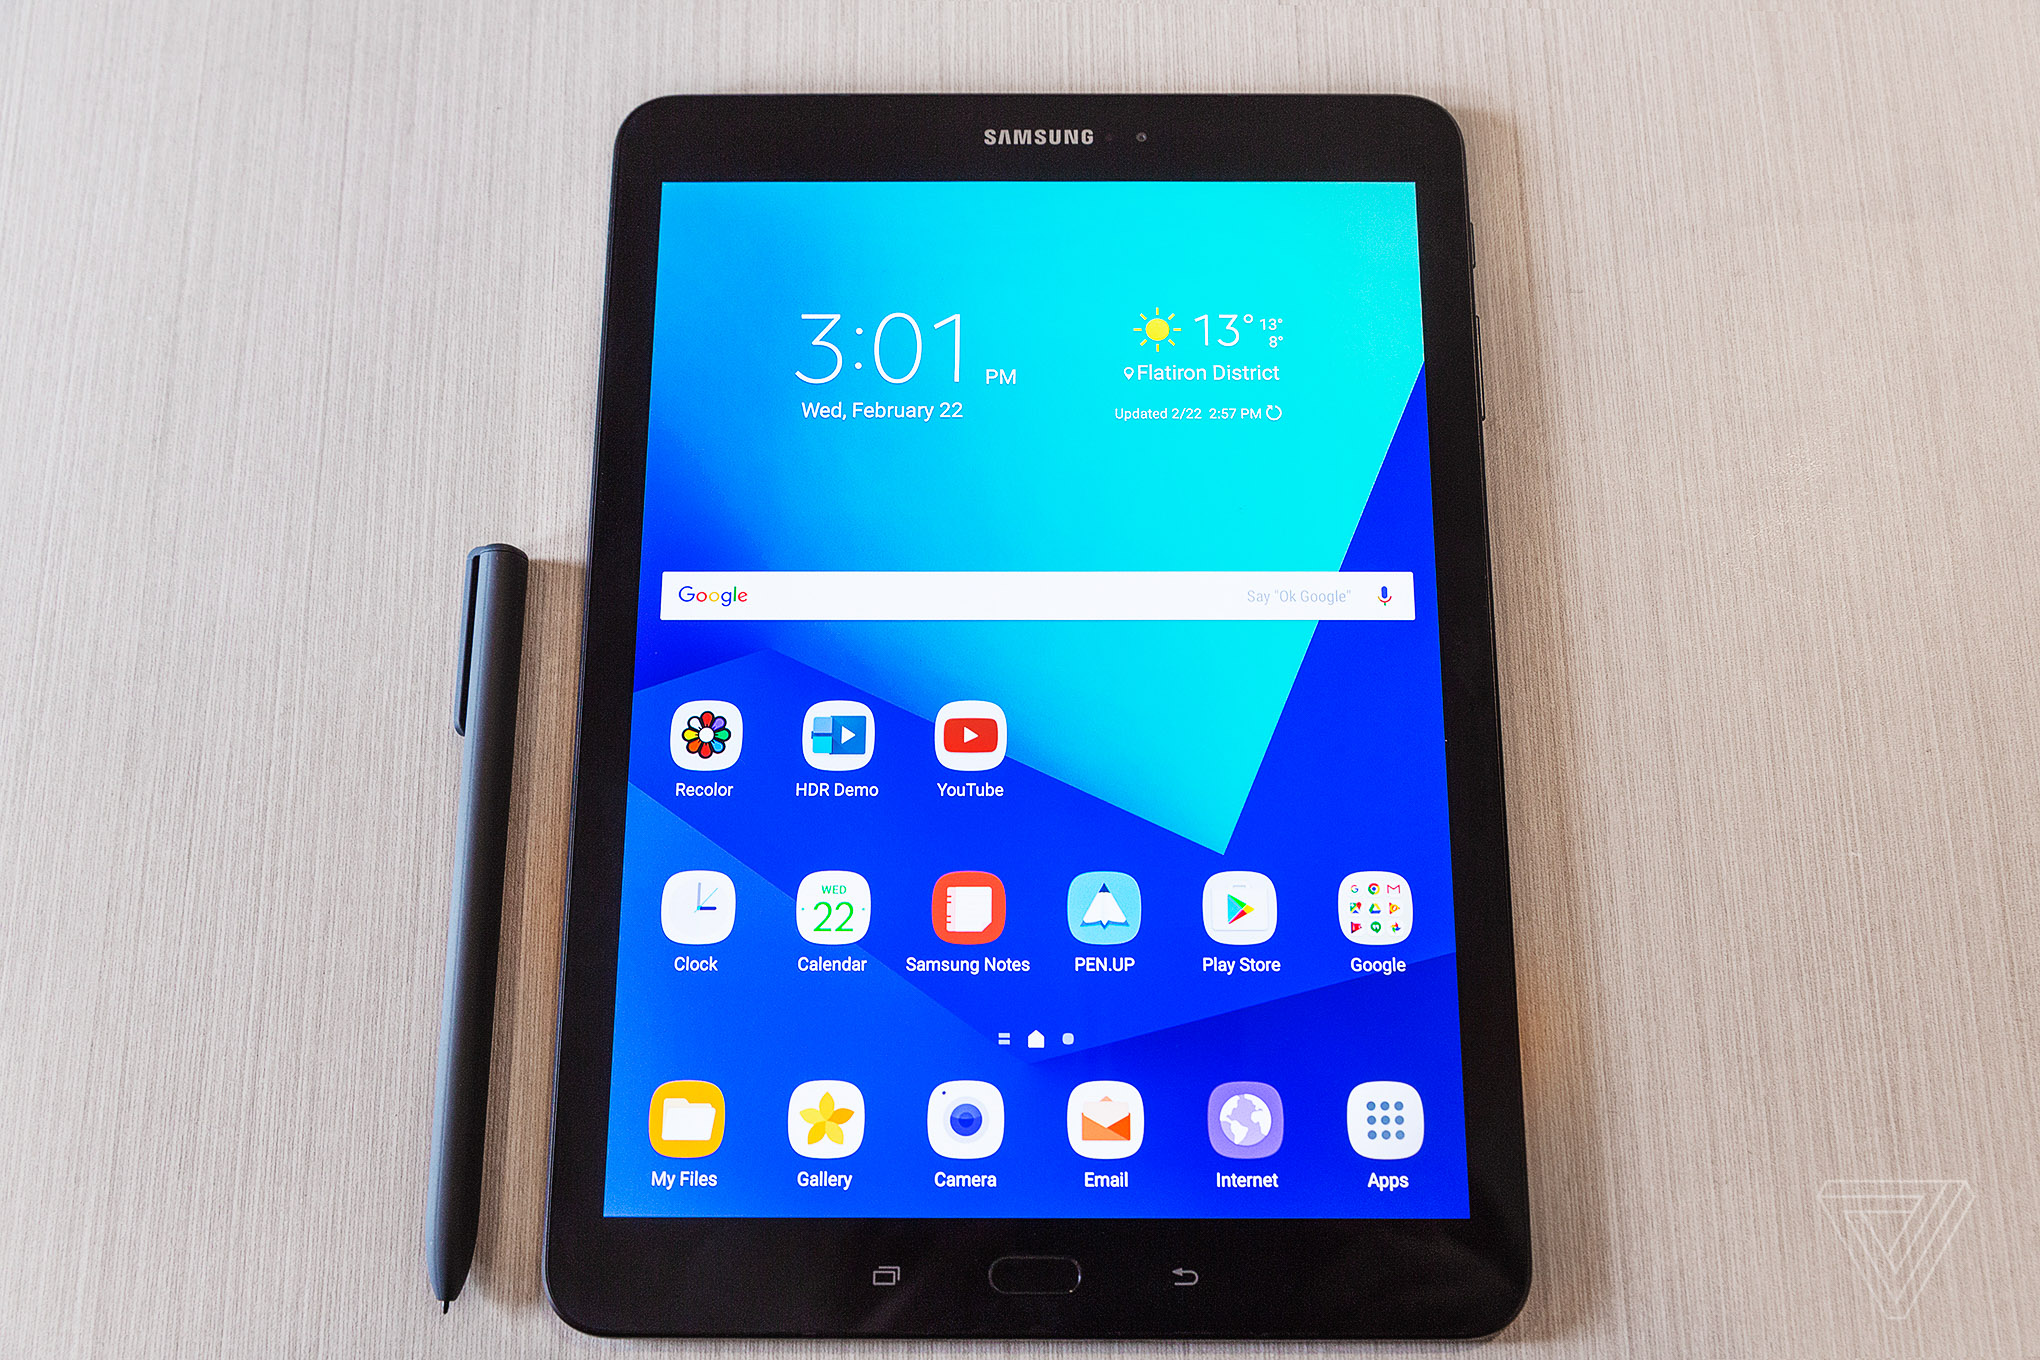 Samsung Tab S3 Samsungs New Galaxy Tab S3 Comes With Four Speakers And A